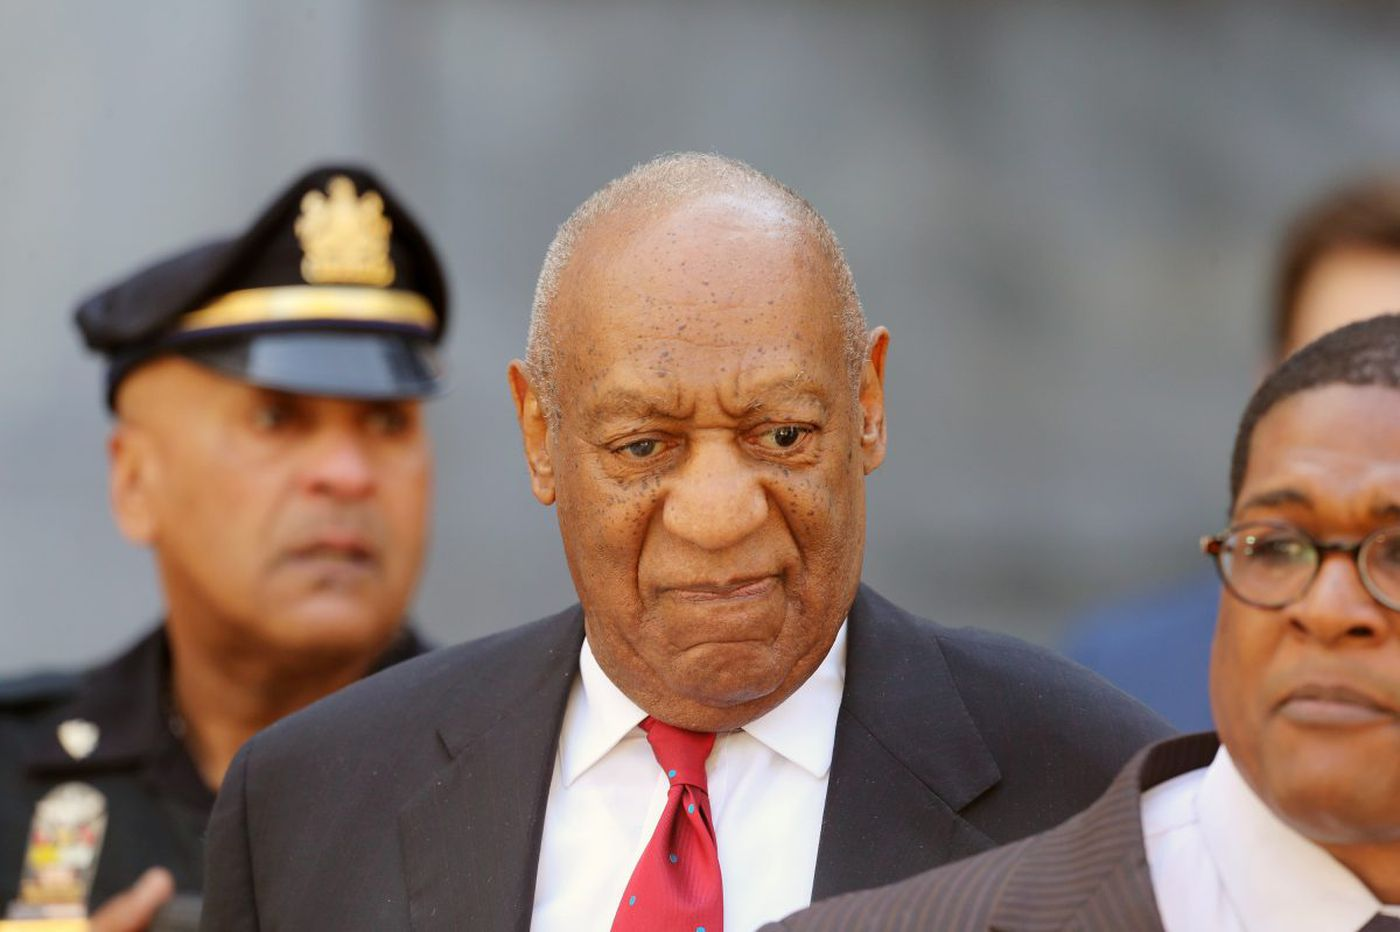 Guilty Cosby proves it's time to kick Hollywood's 'casting couch' to the curb | Ronnie Polaneczky